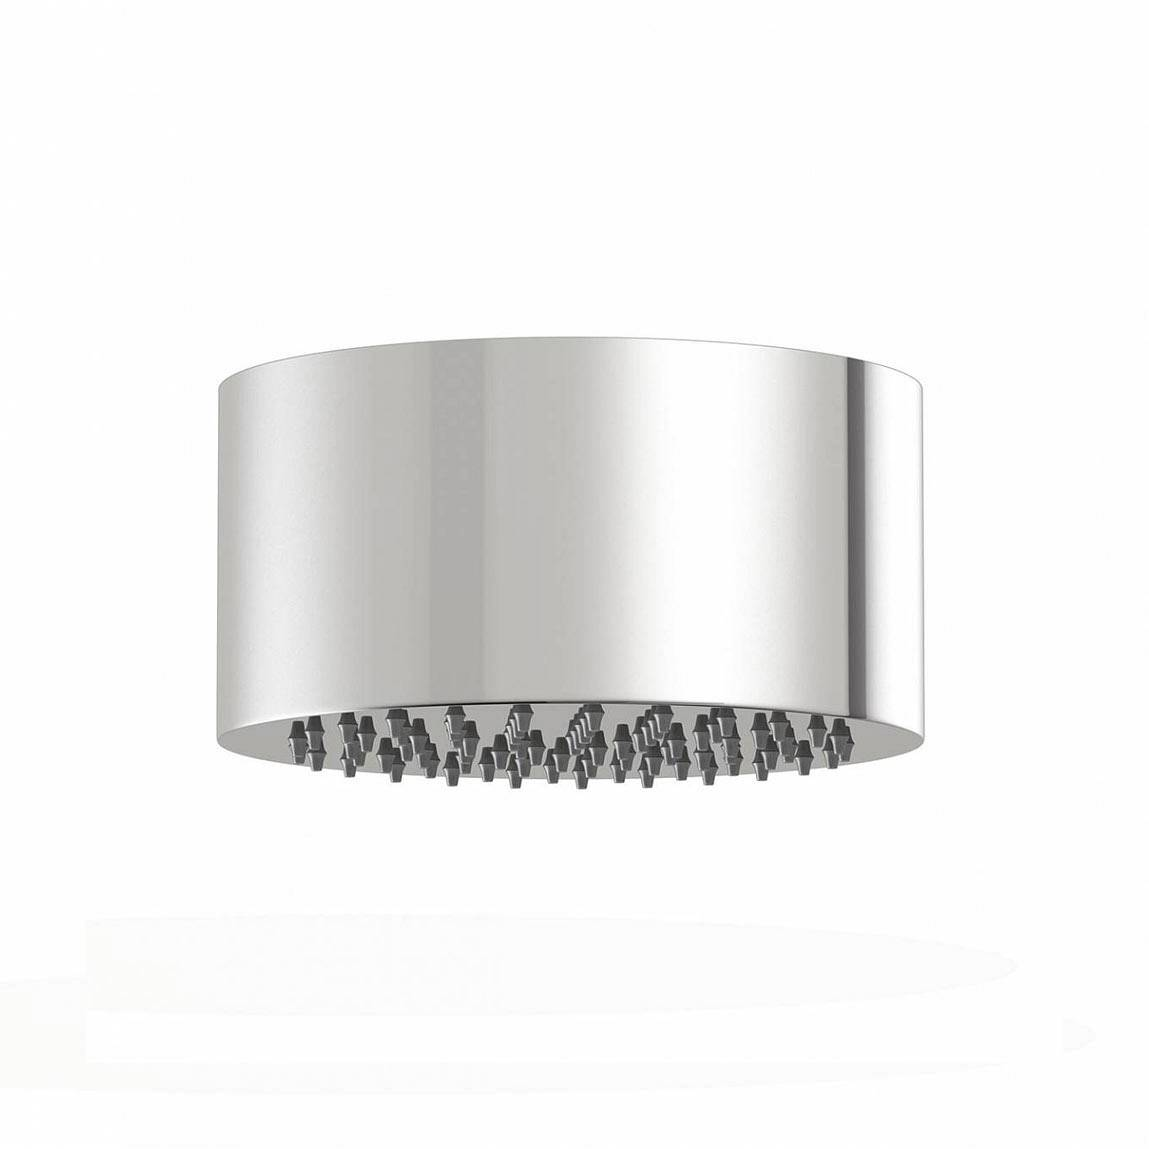 Image of Stratus Ceiling 200mm Shower Head Small